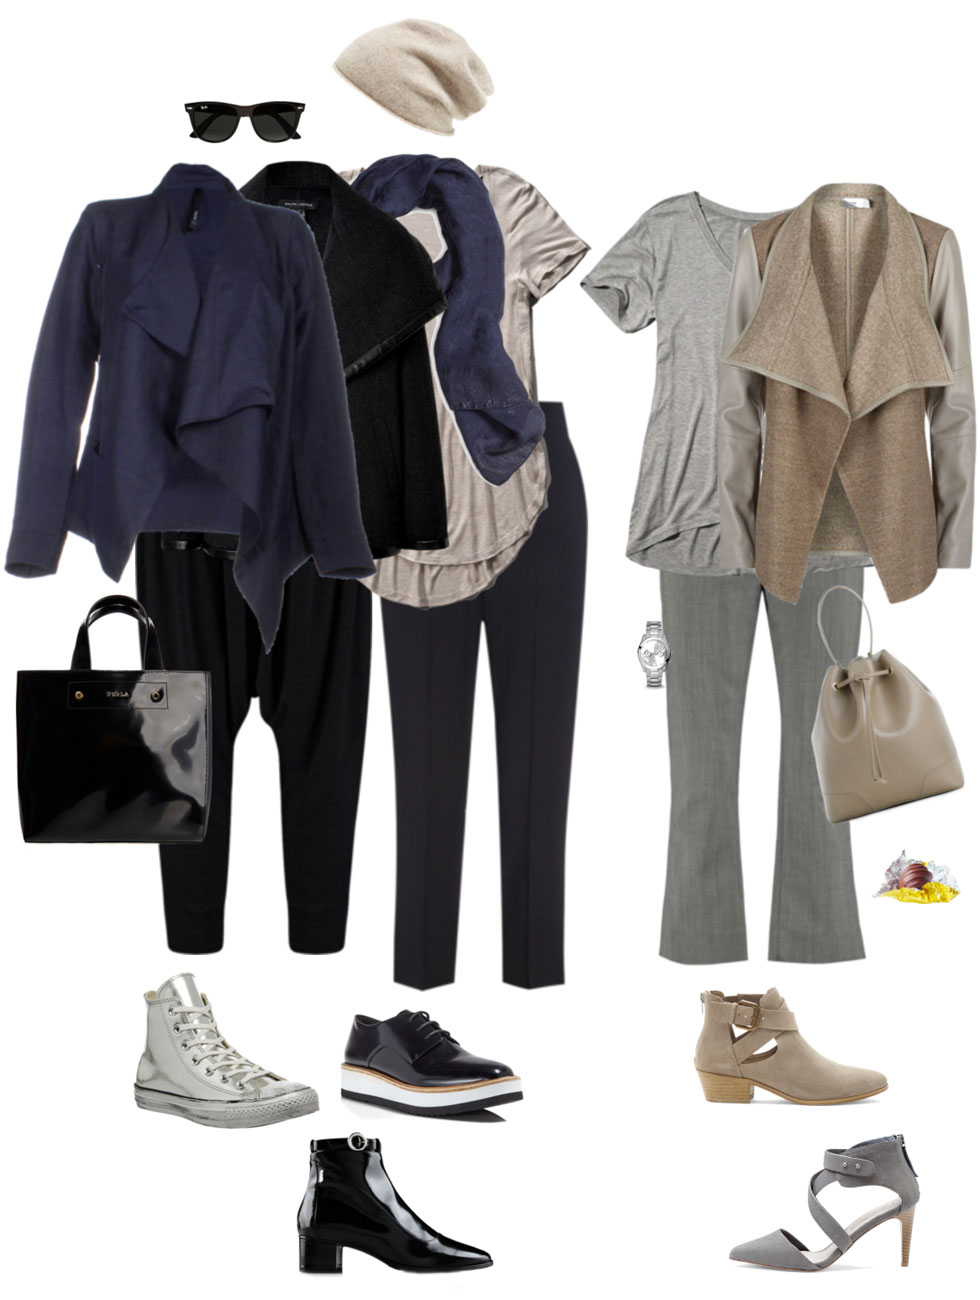 Ensemble: Dark Neutral Spring Drape